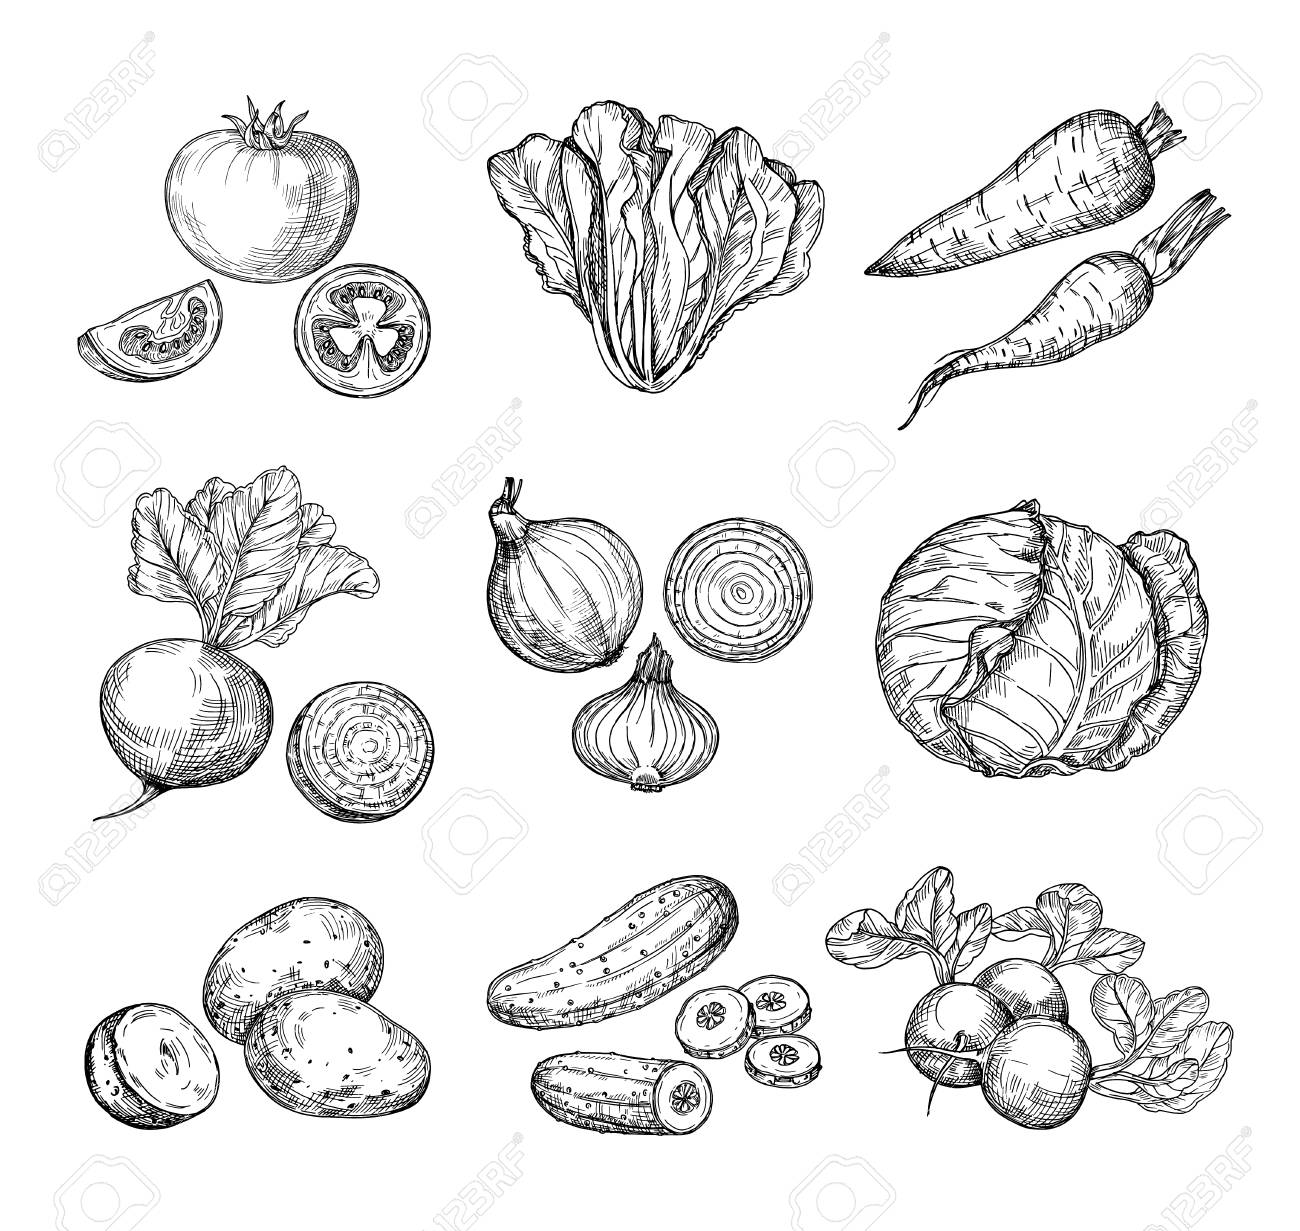 Banque dimages sketch vegetables fresh tomato cucumber and carrots potatoes hand drawn onions radish and cabbage garden vegetable vector set of